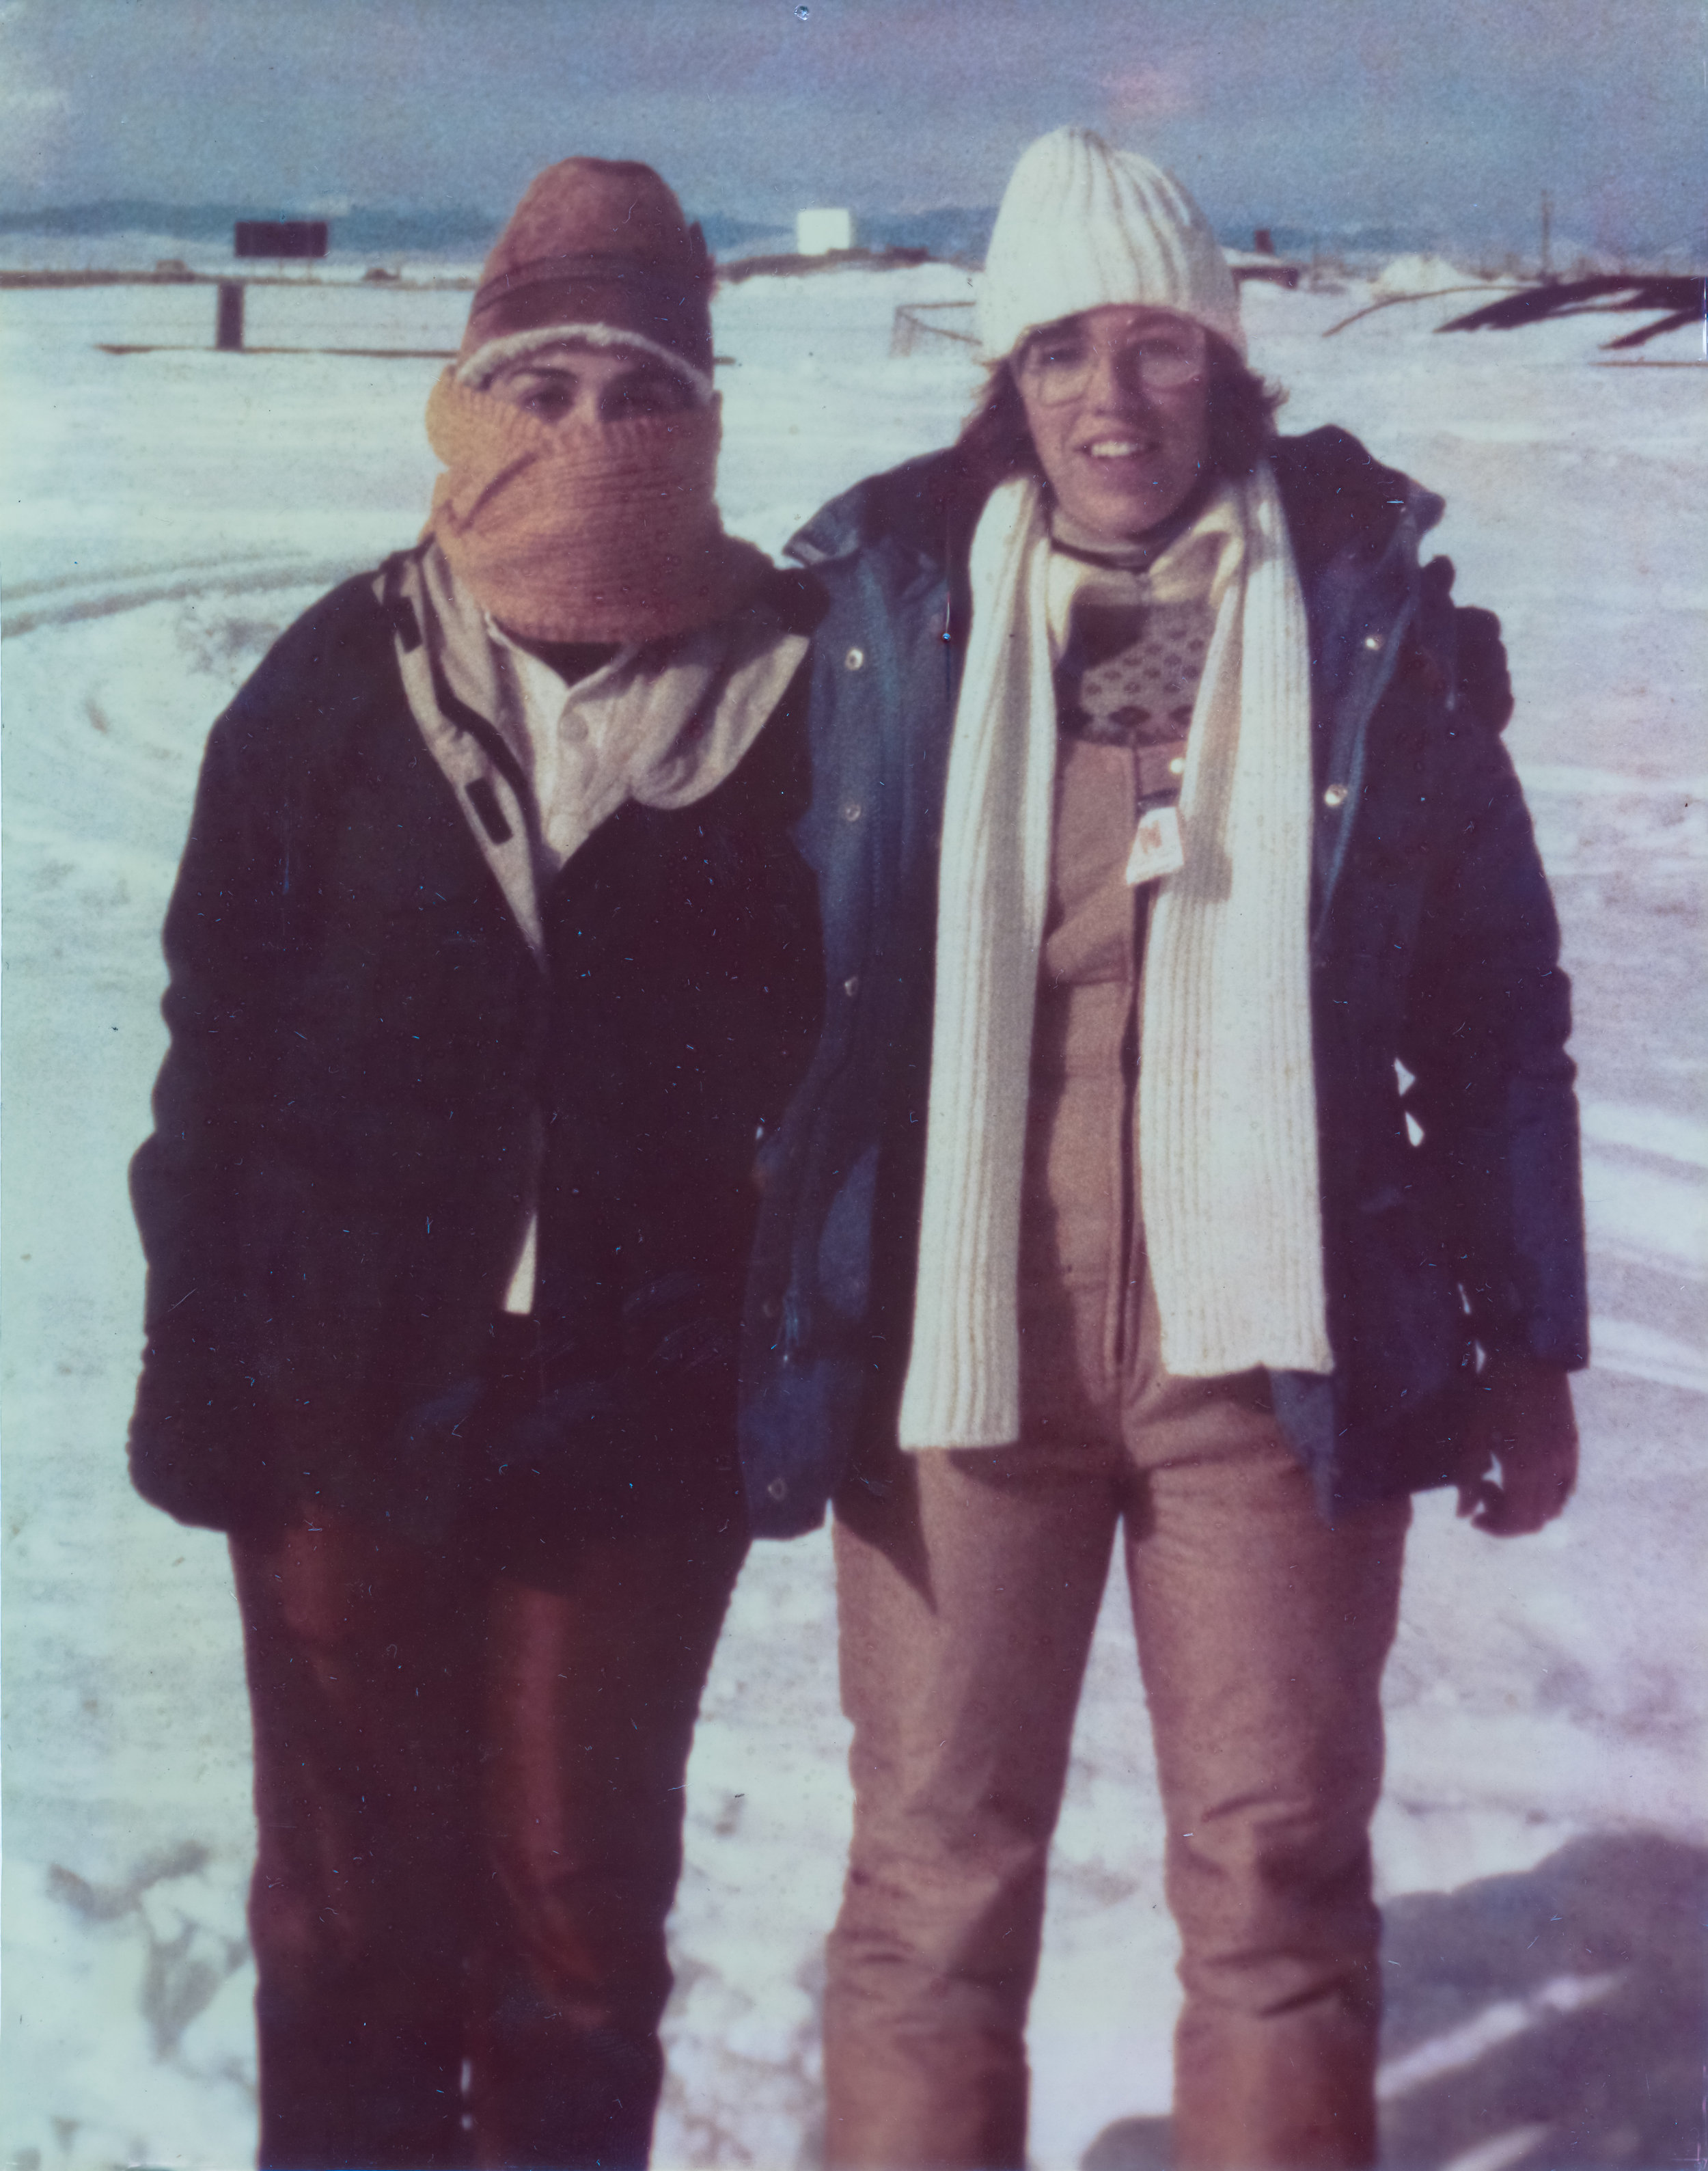 Susan Meyers-Holms and me, Cindy Weigel, 1979